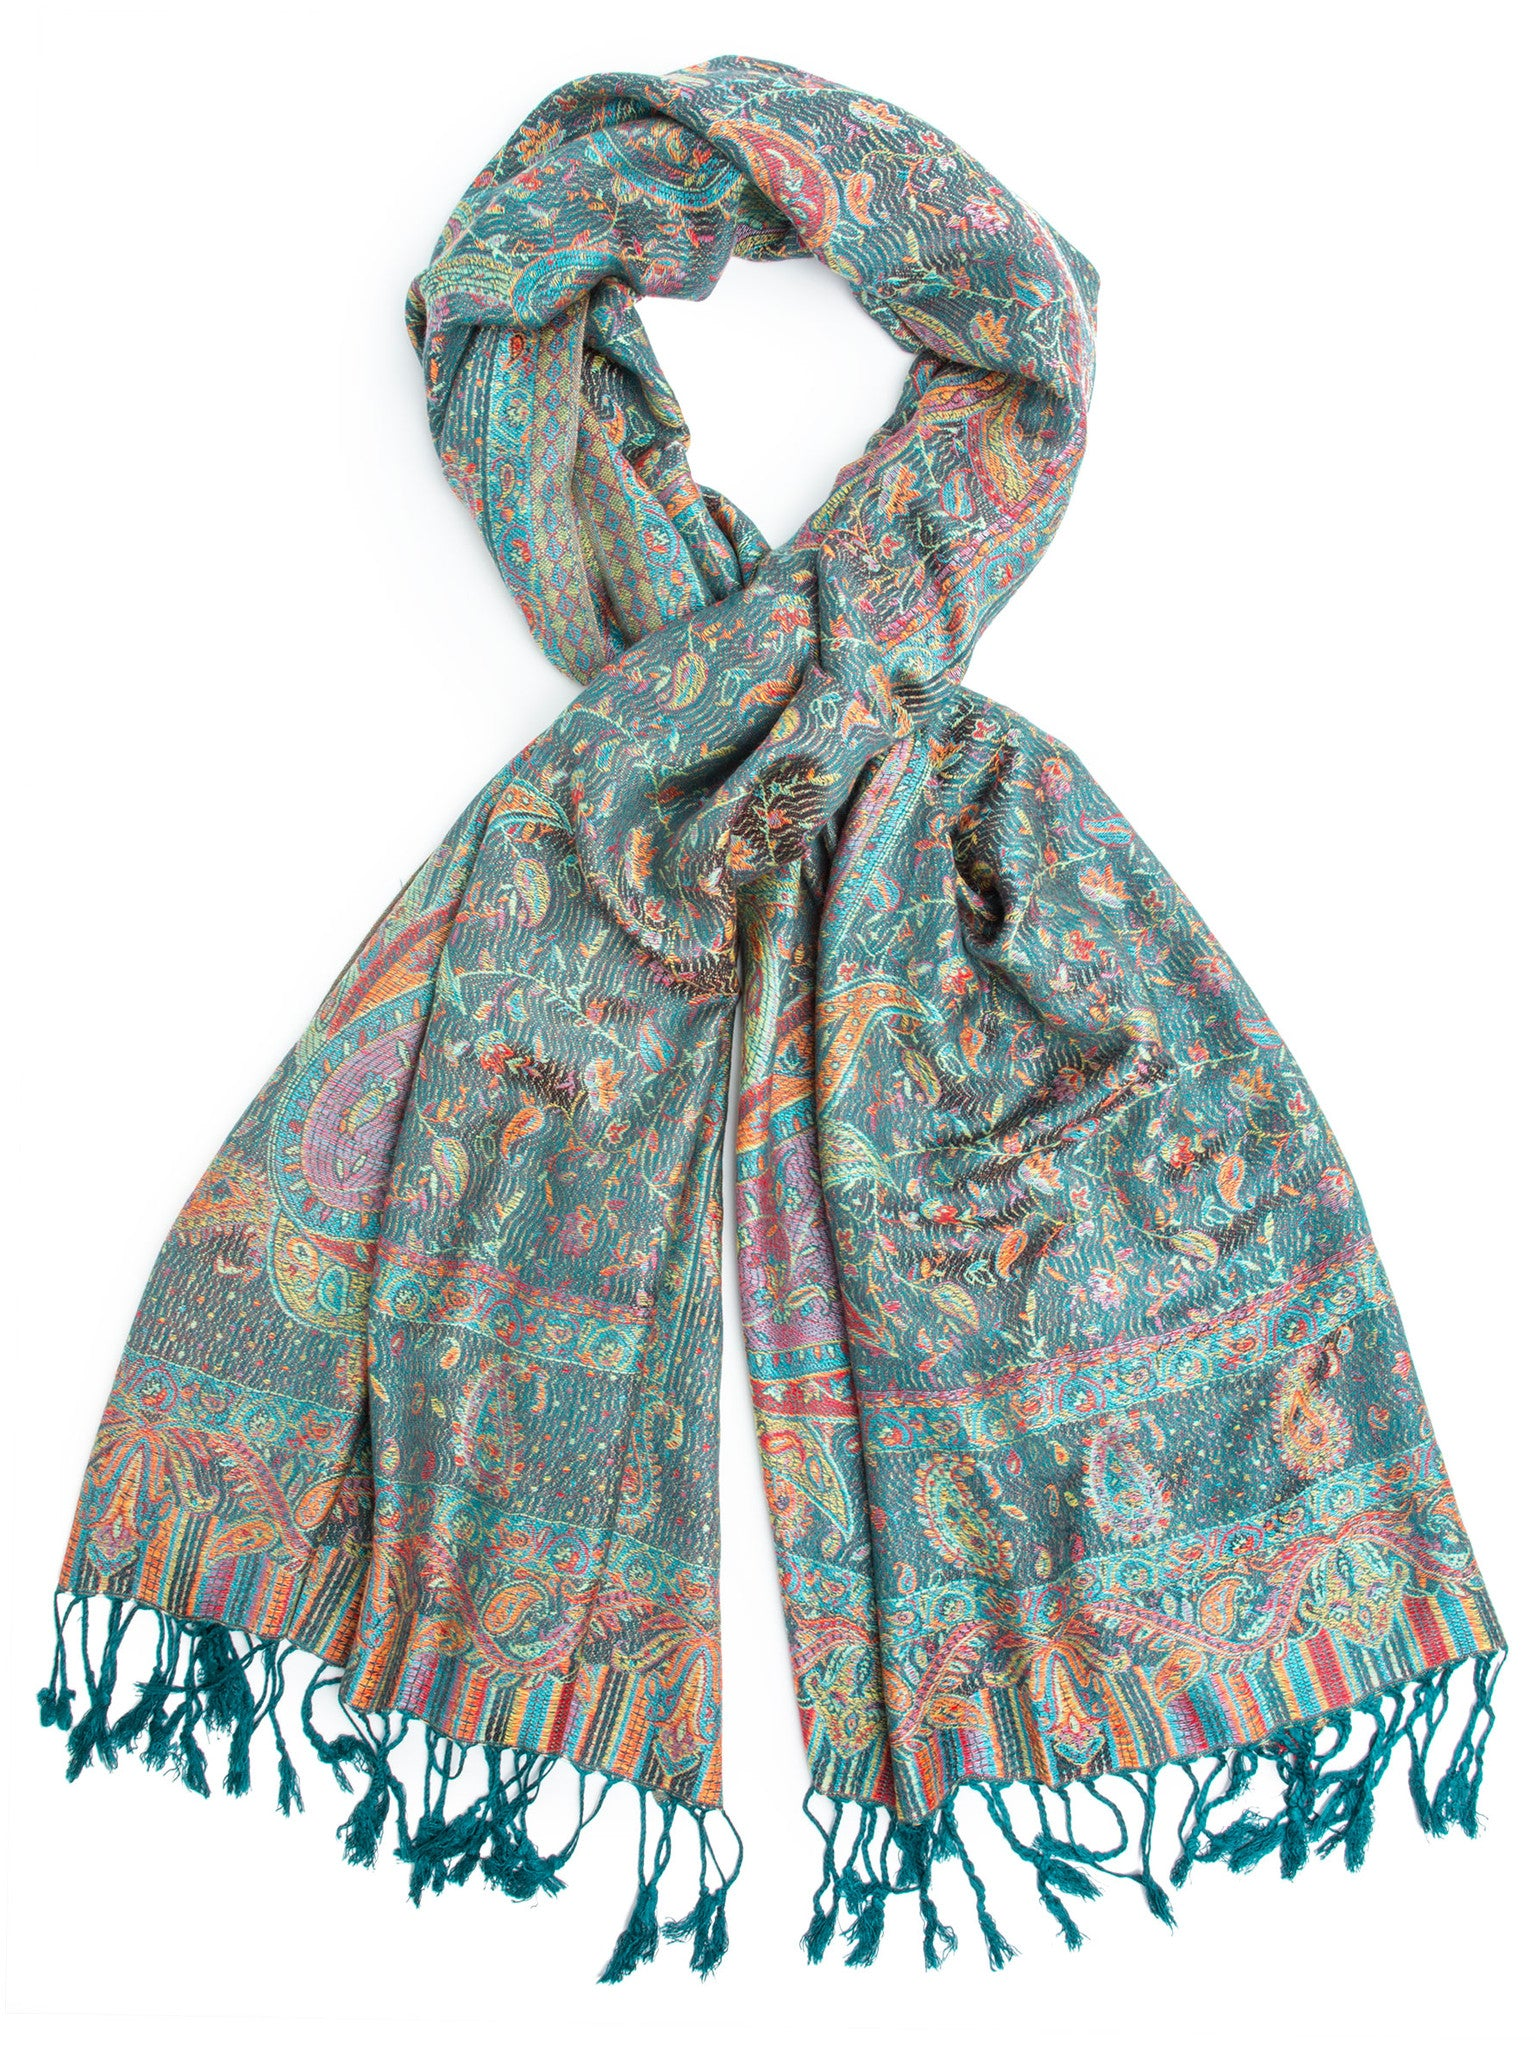 Scarves - Tiaja Scarf, Pashmina Indian Paisley Traditional Jacquard Scarf - hand made in India -(Teal) Bohomonde  - 1